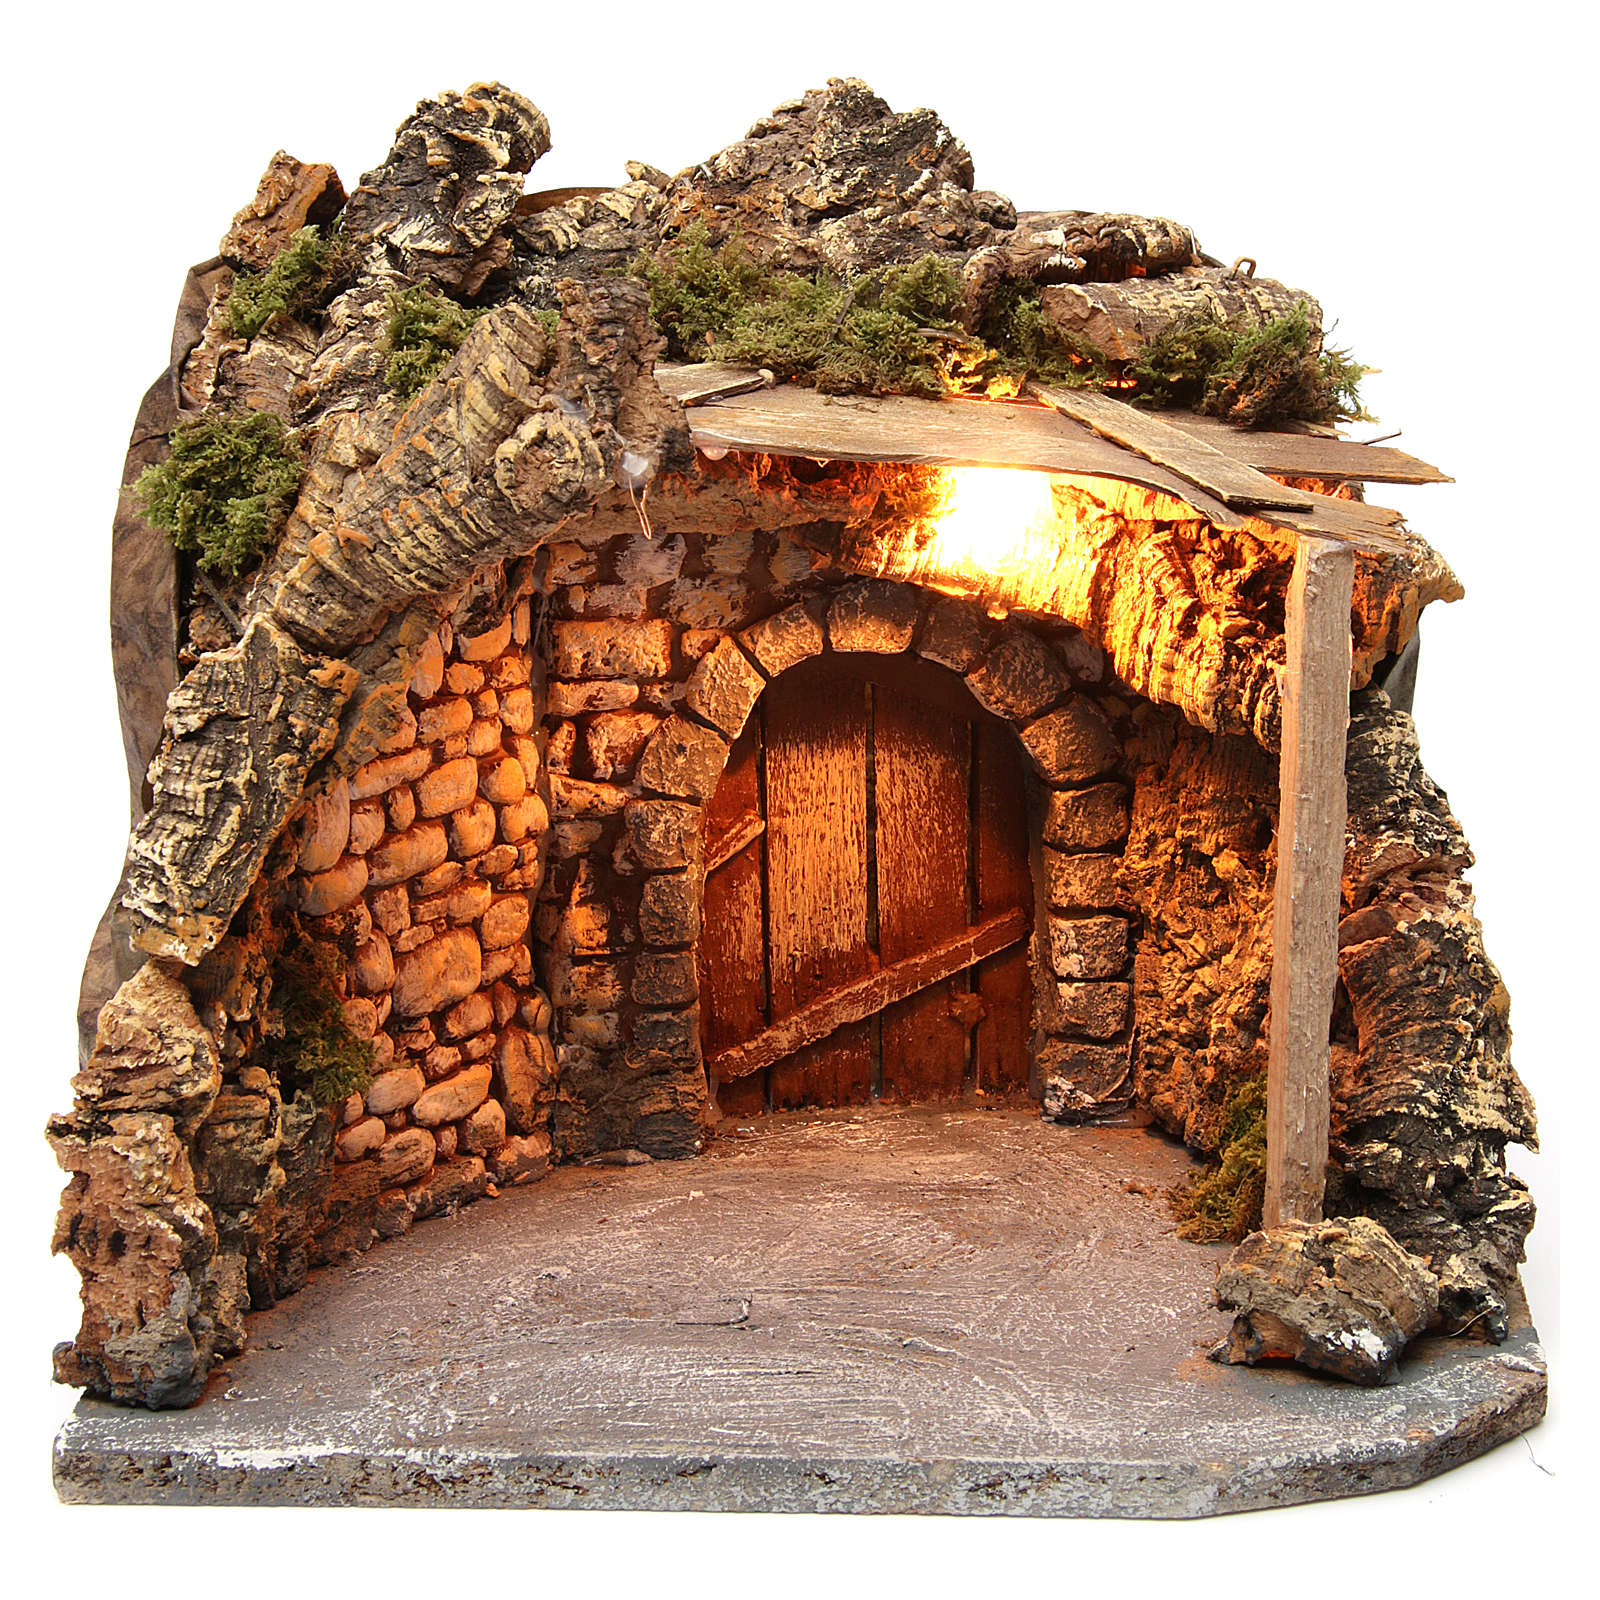 Illuminated stable with wooden porch and cork for Neapolitan Nativity Scene 25x28x25 cm 4